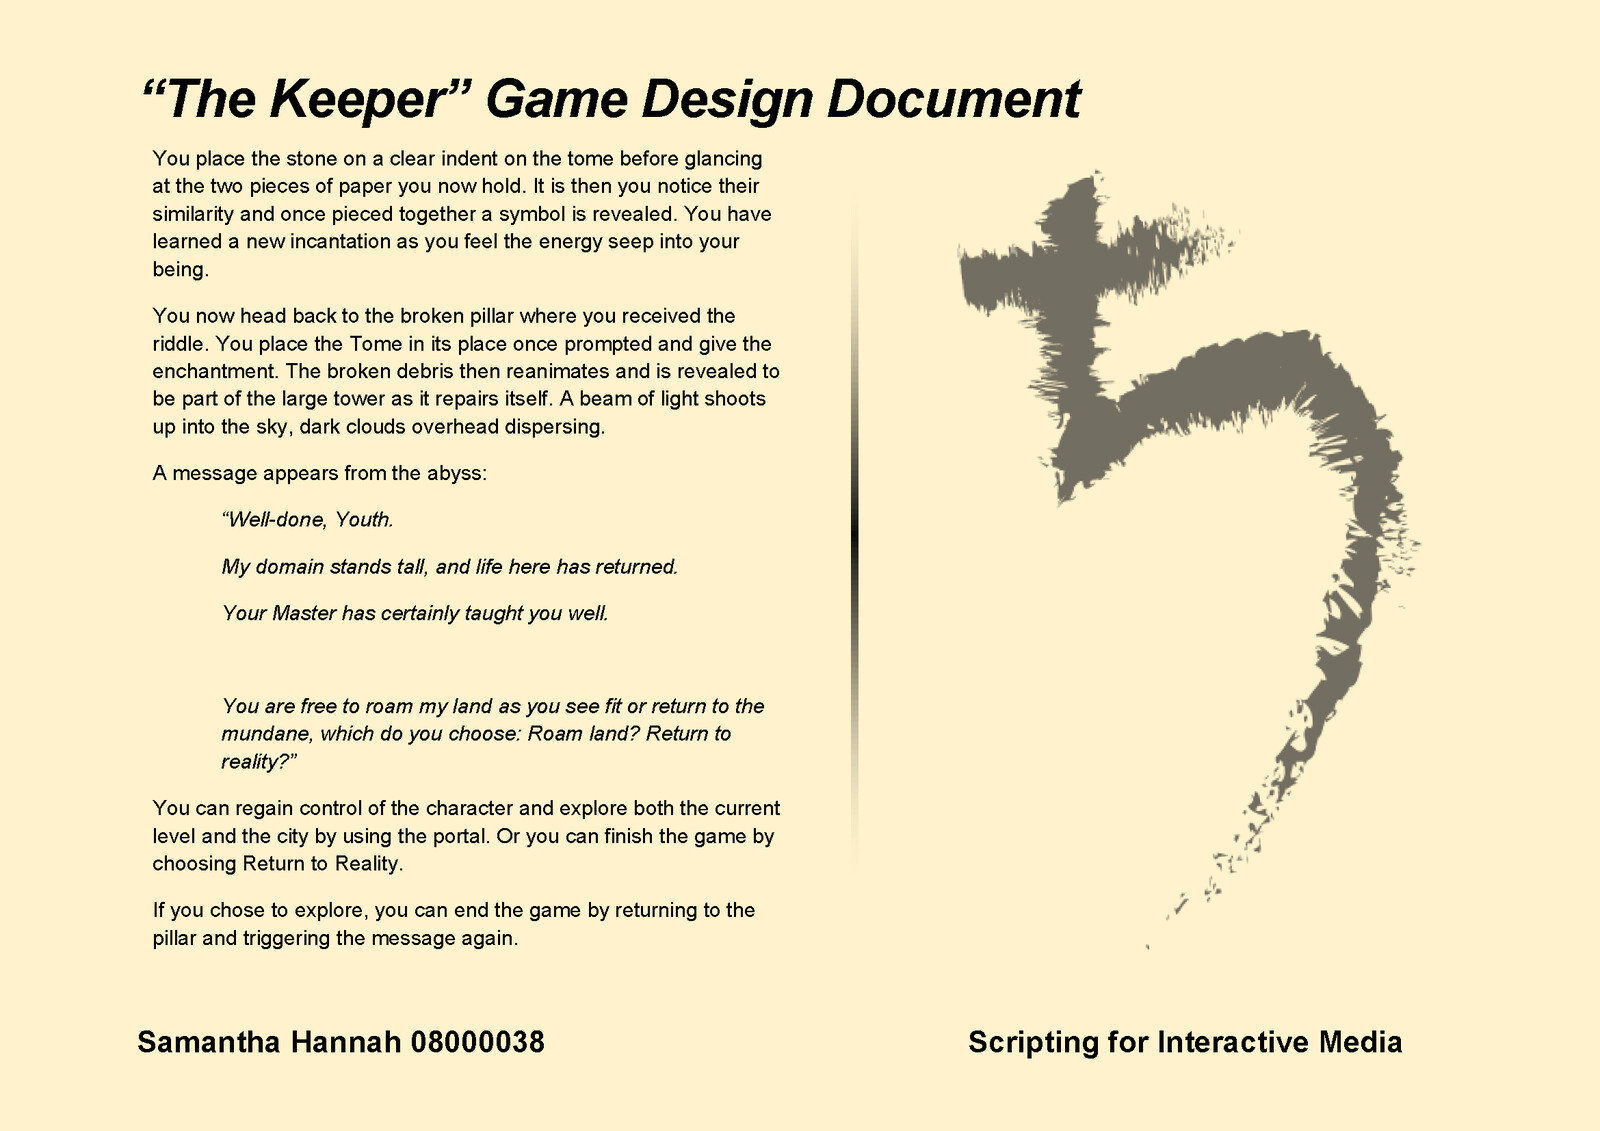 Game Design Document Page 6